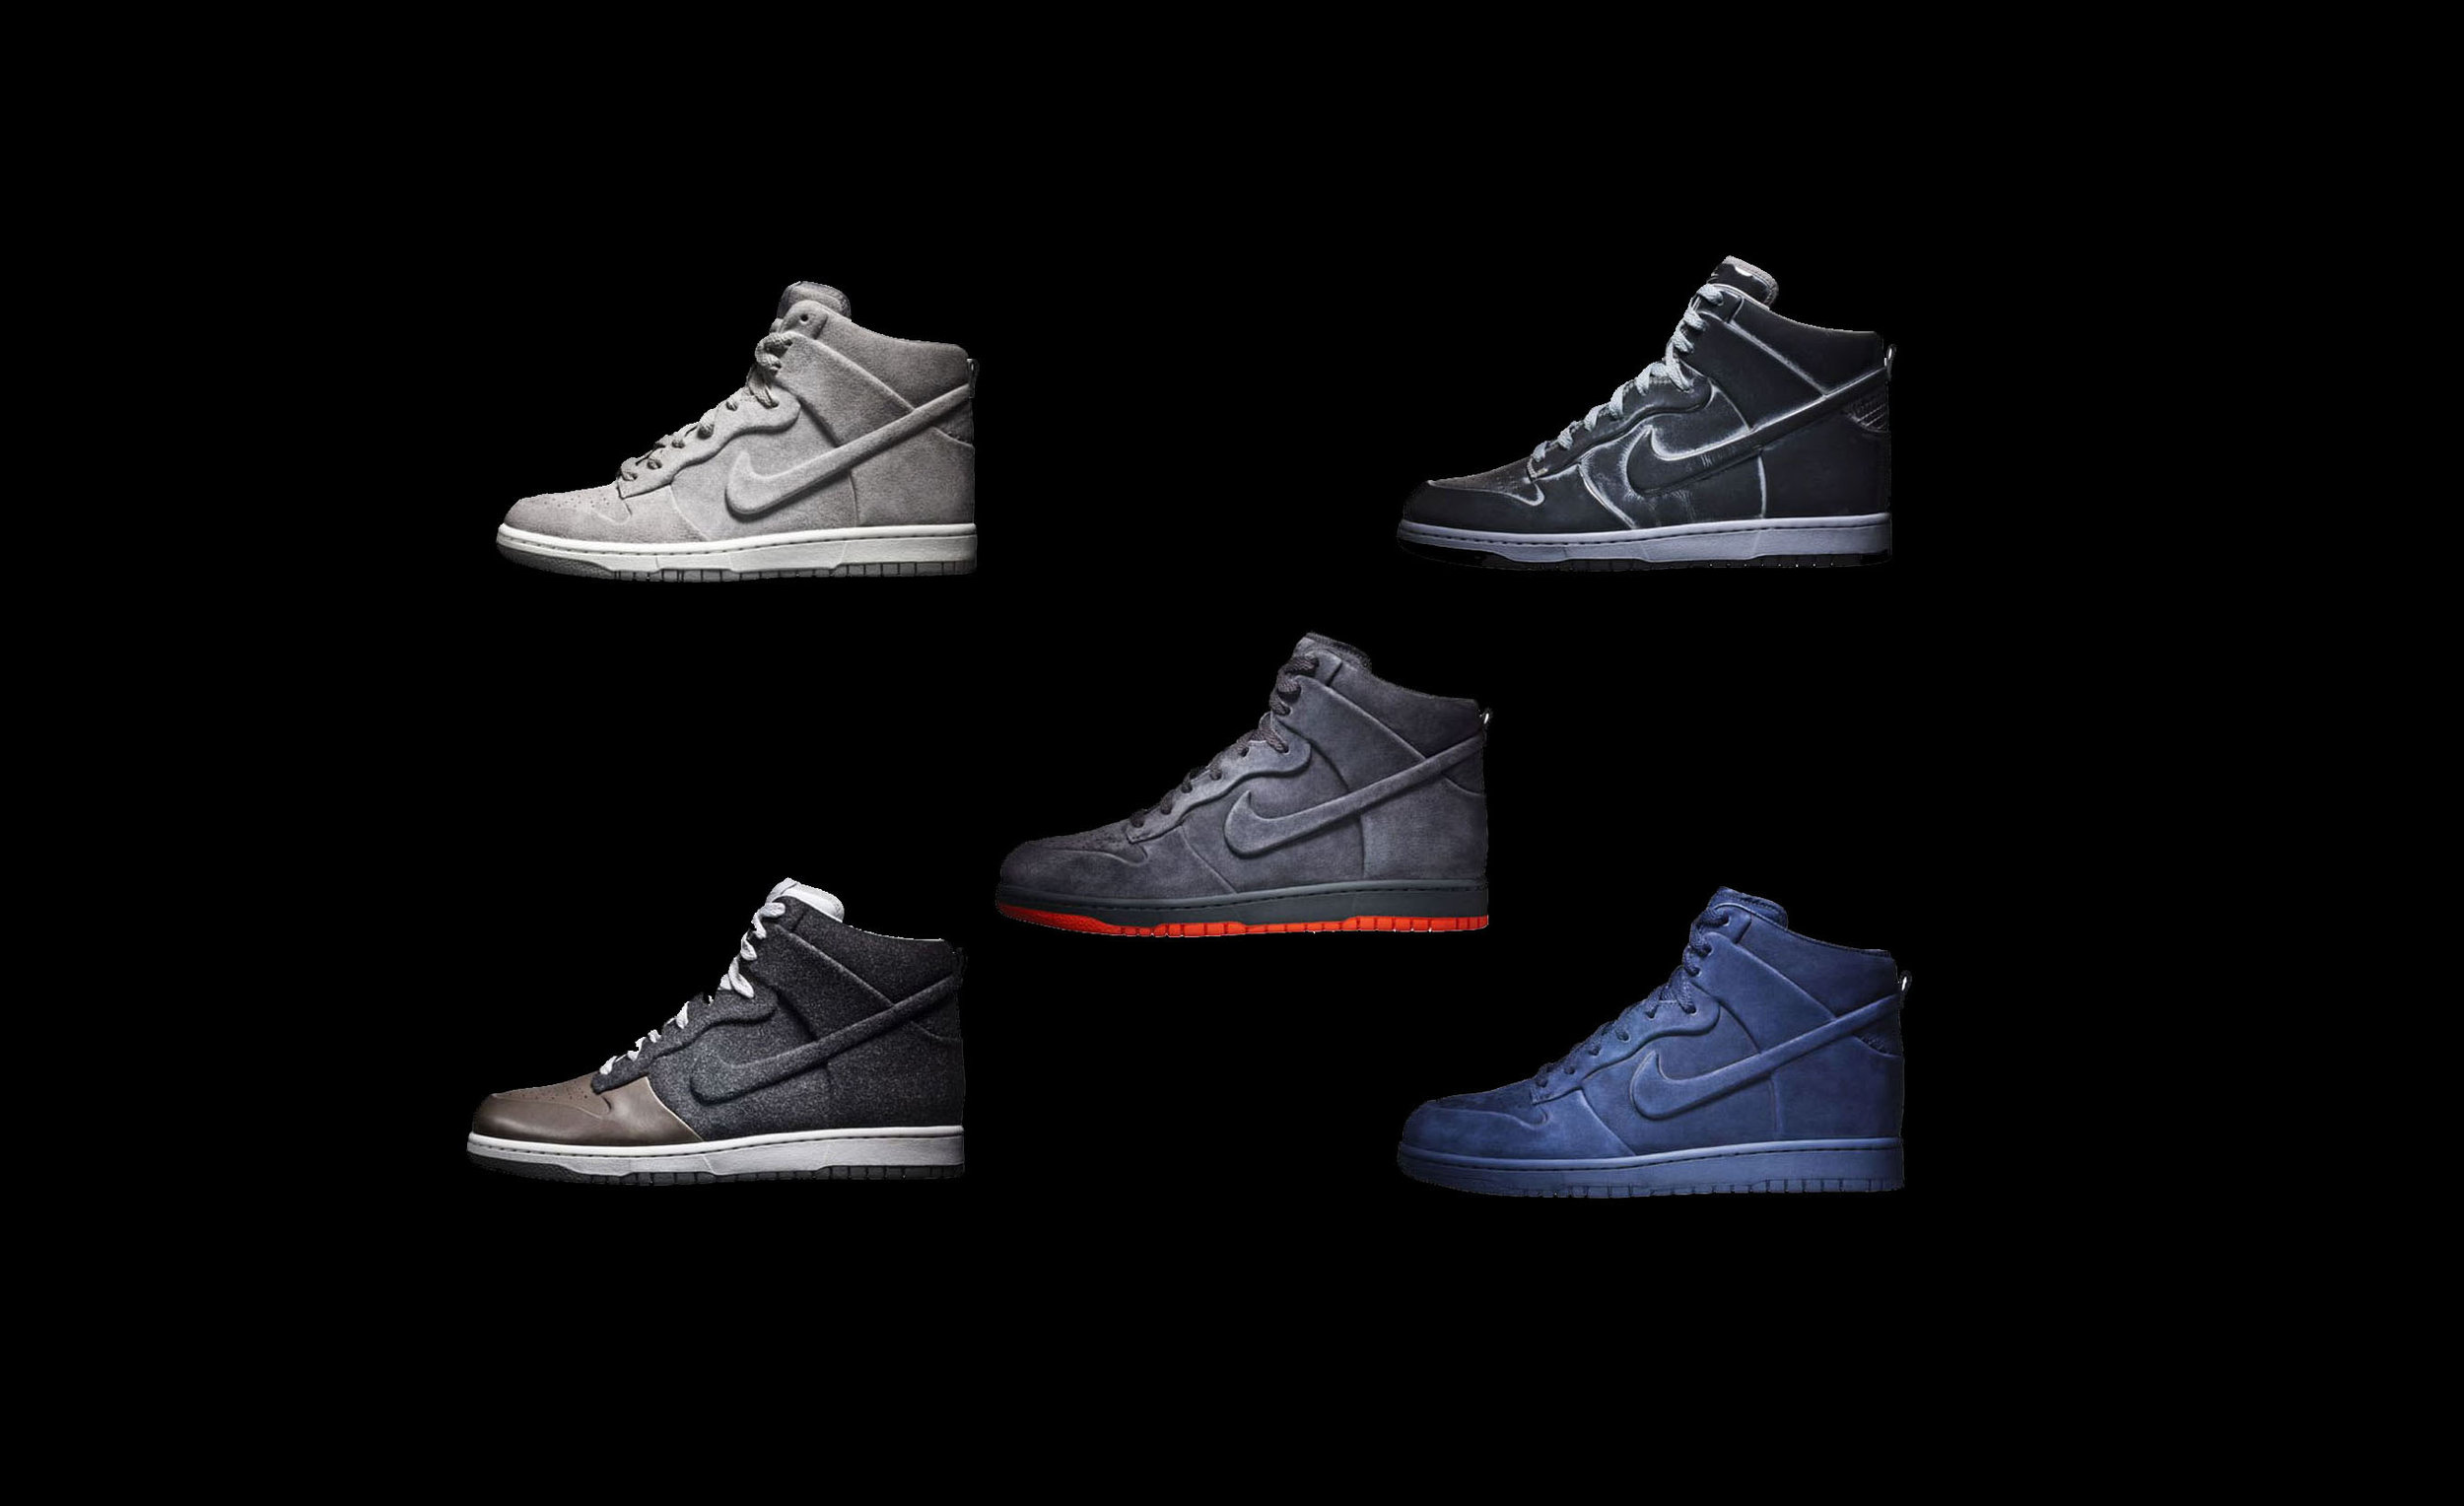 nike-dunk-high-vac-tech-holiday-2011.jpg